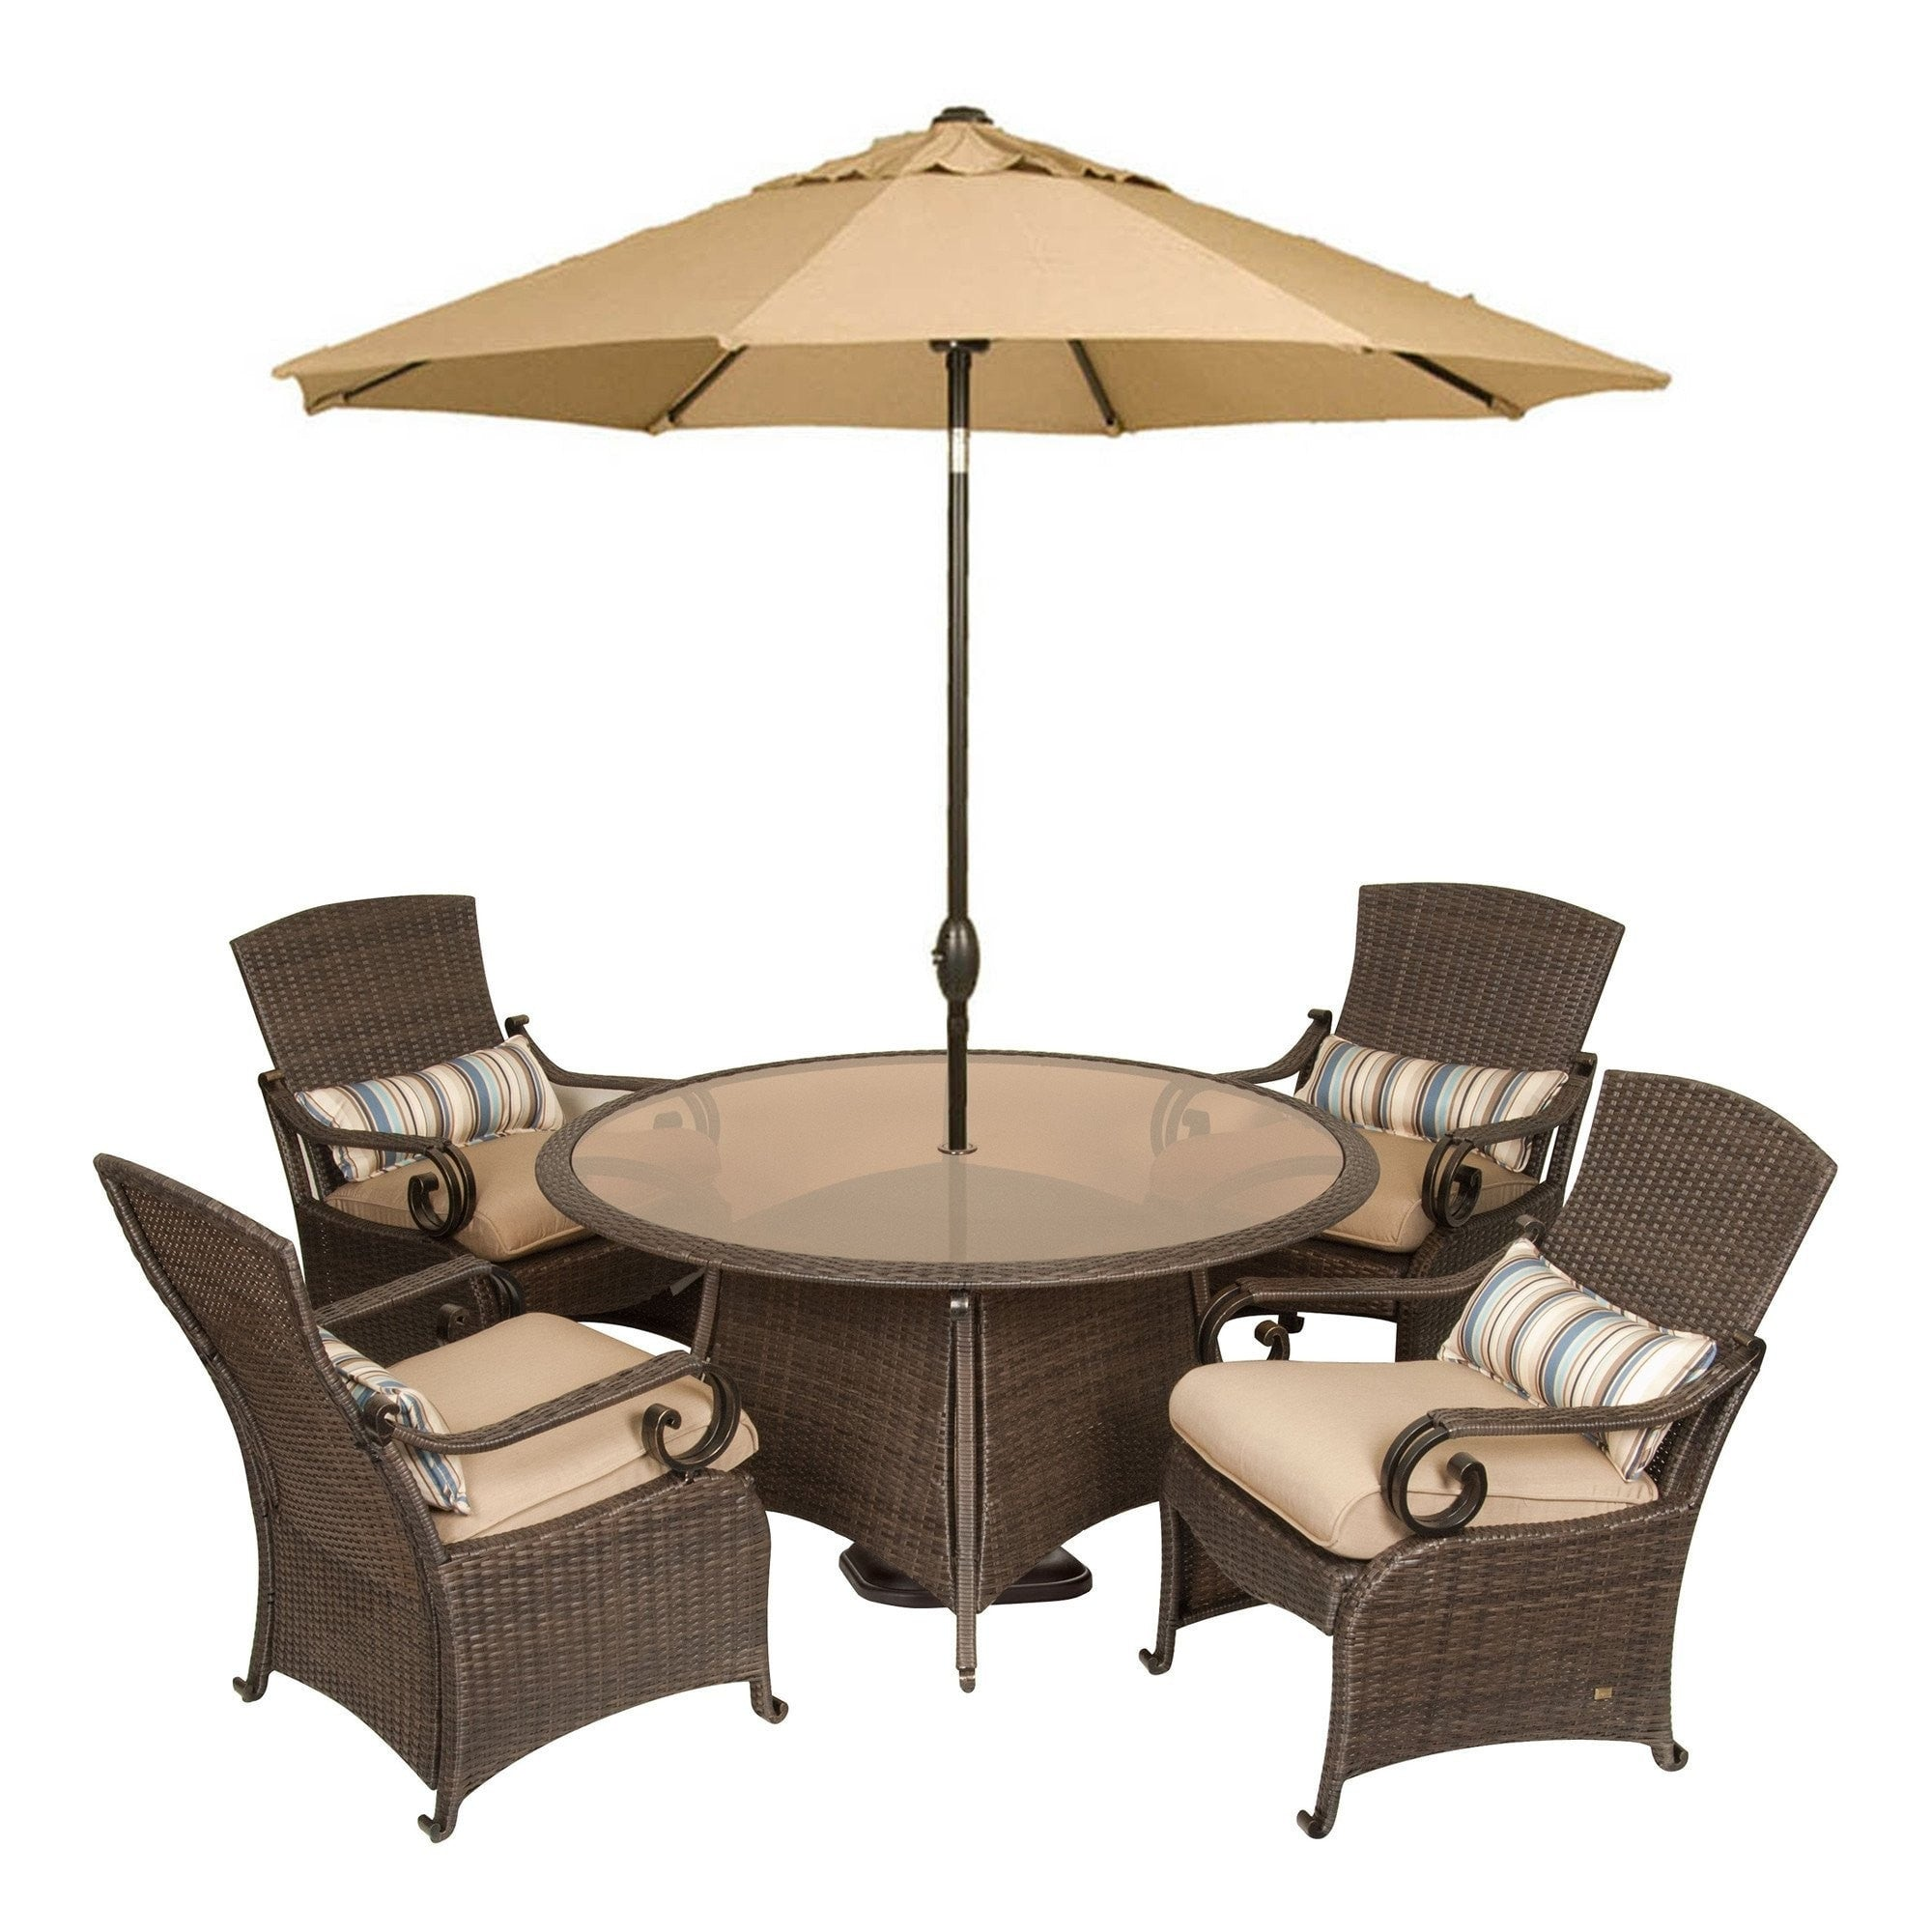 Charming Dining   Lake Como Patio Dining Set With Umbrella And Base (Khaki Tan, 7 Part 8